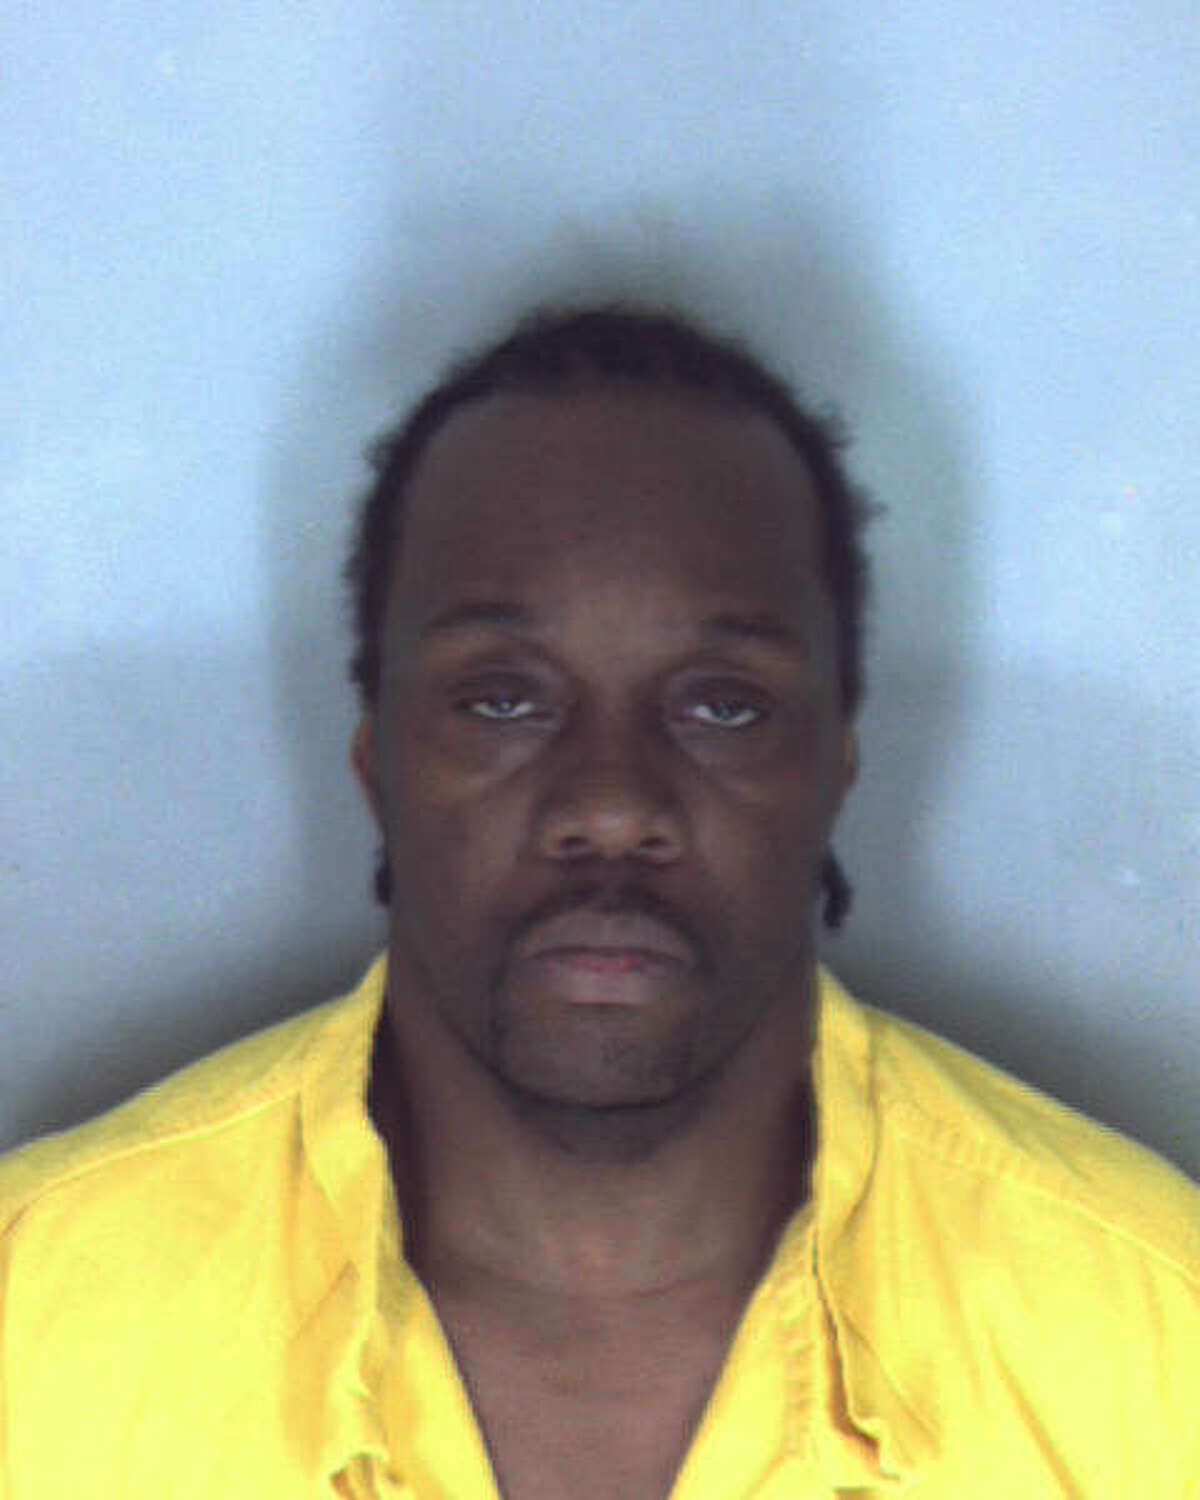 Louis Chaney (Albany County Sheriff's Office)